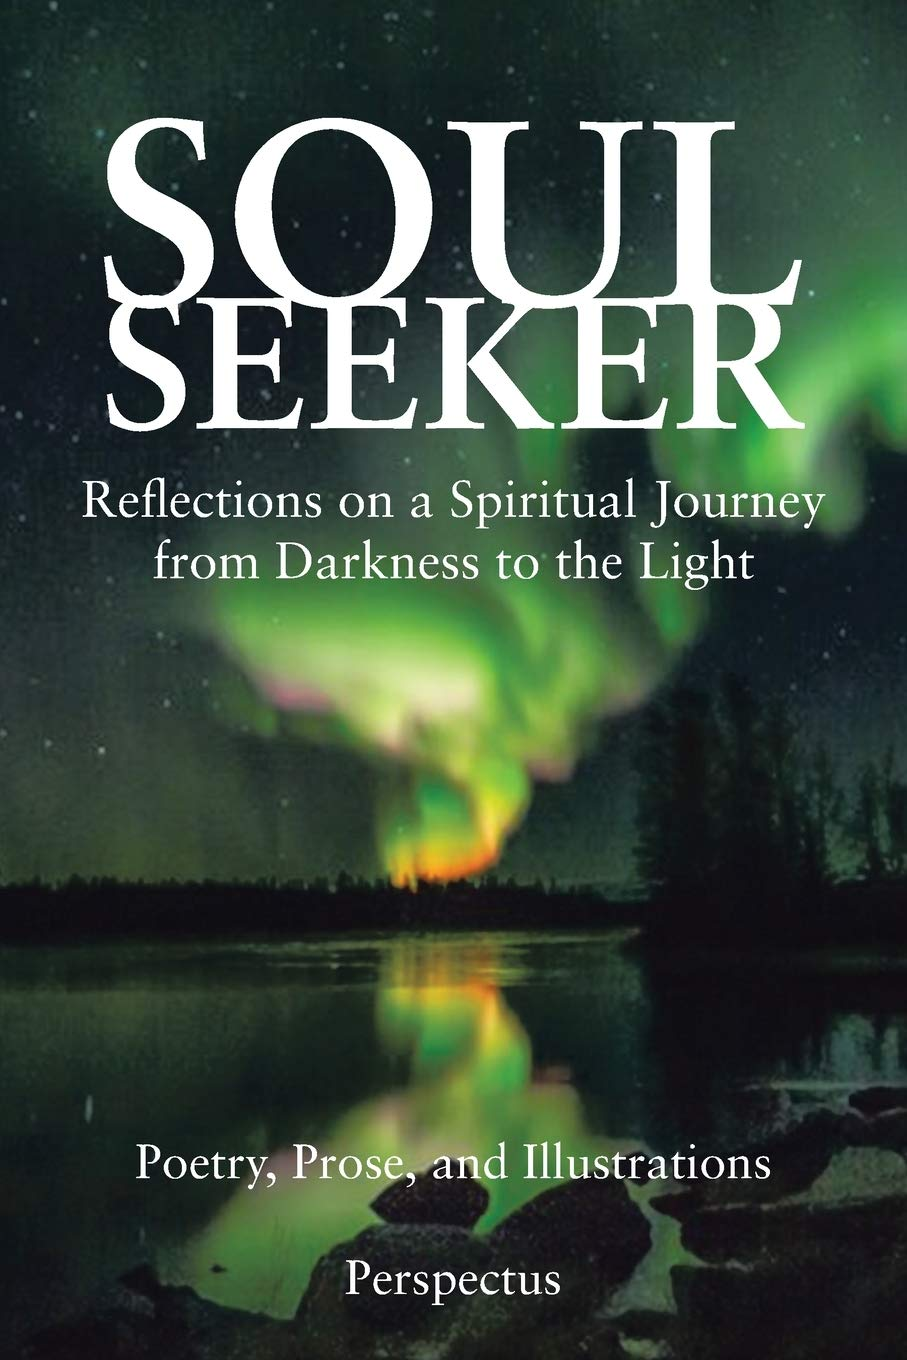 Soul Seeker: Reflections on a Spiritual Journey from Darkness to the Light